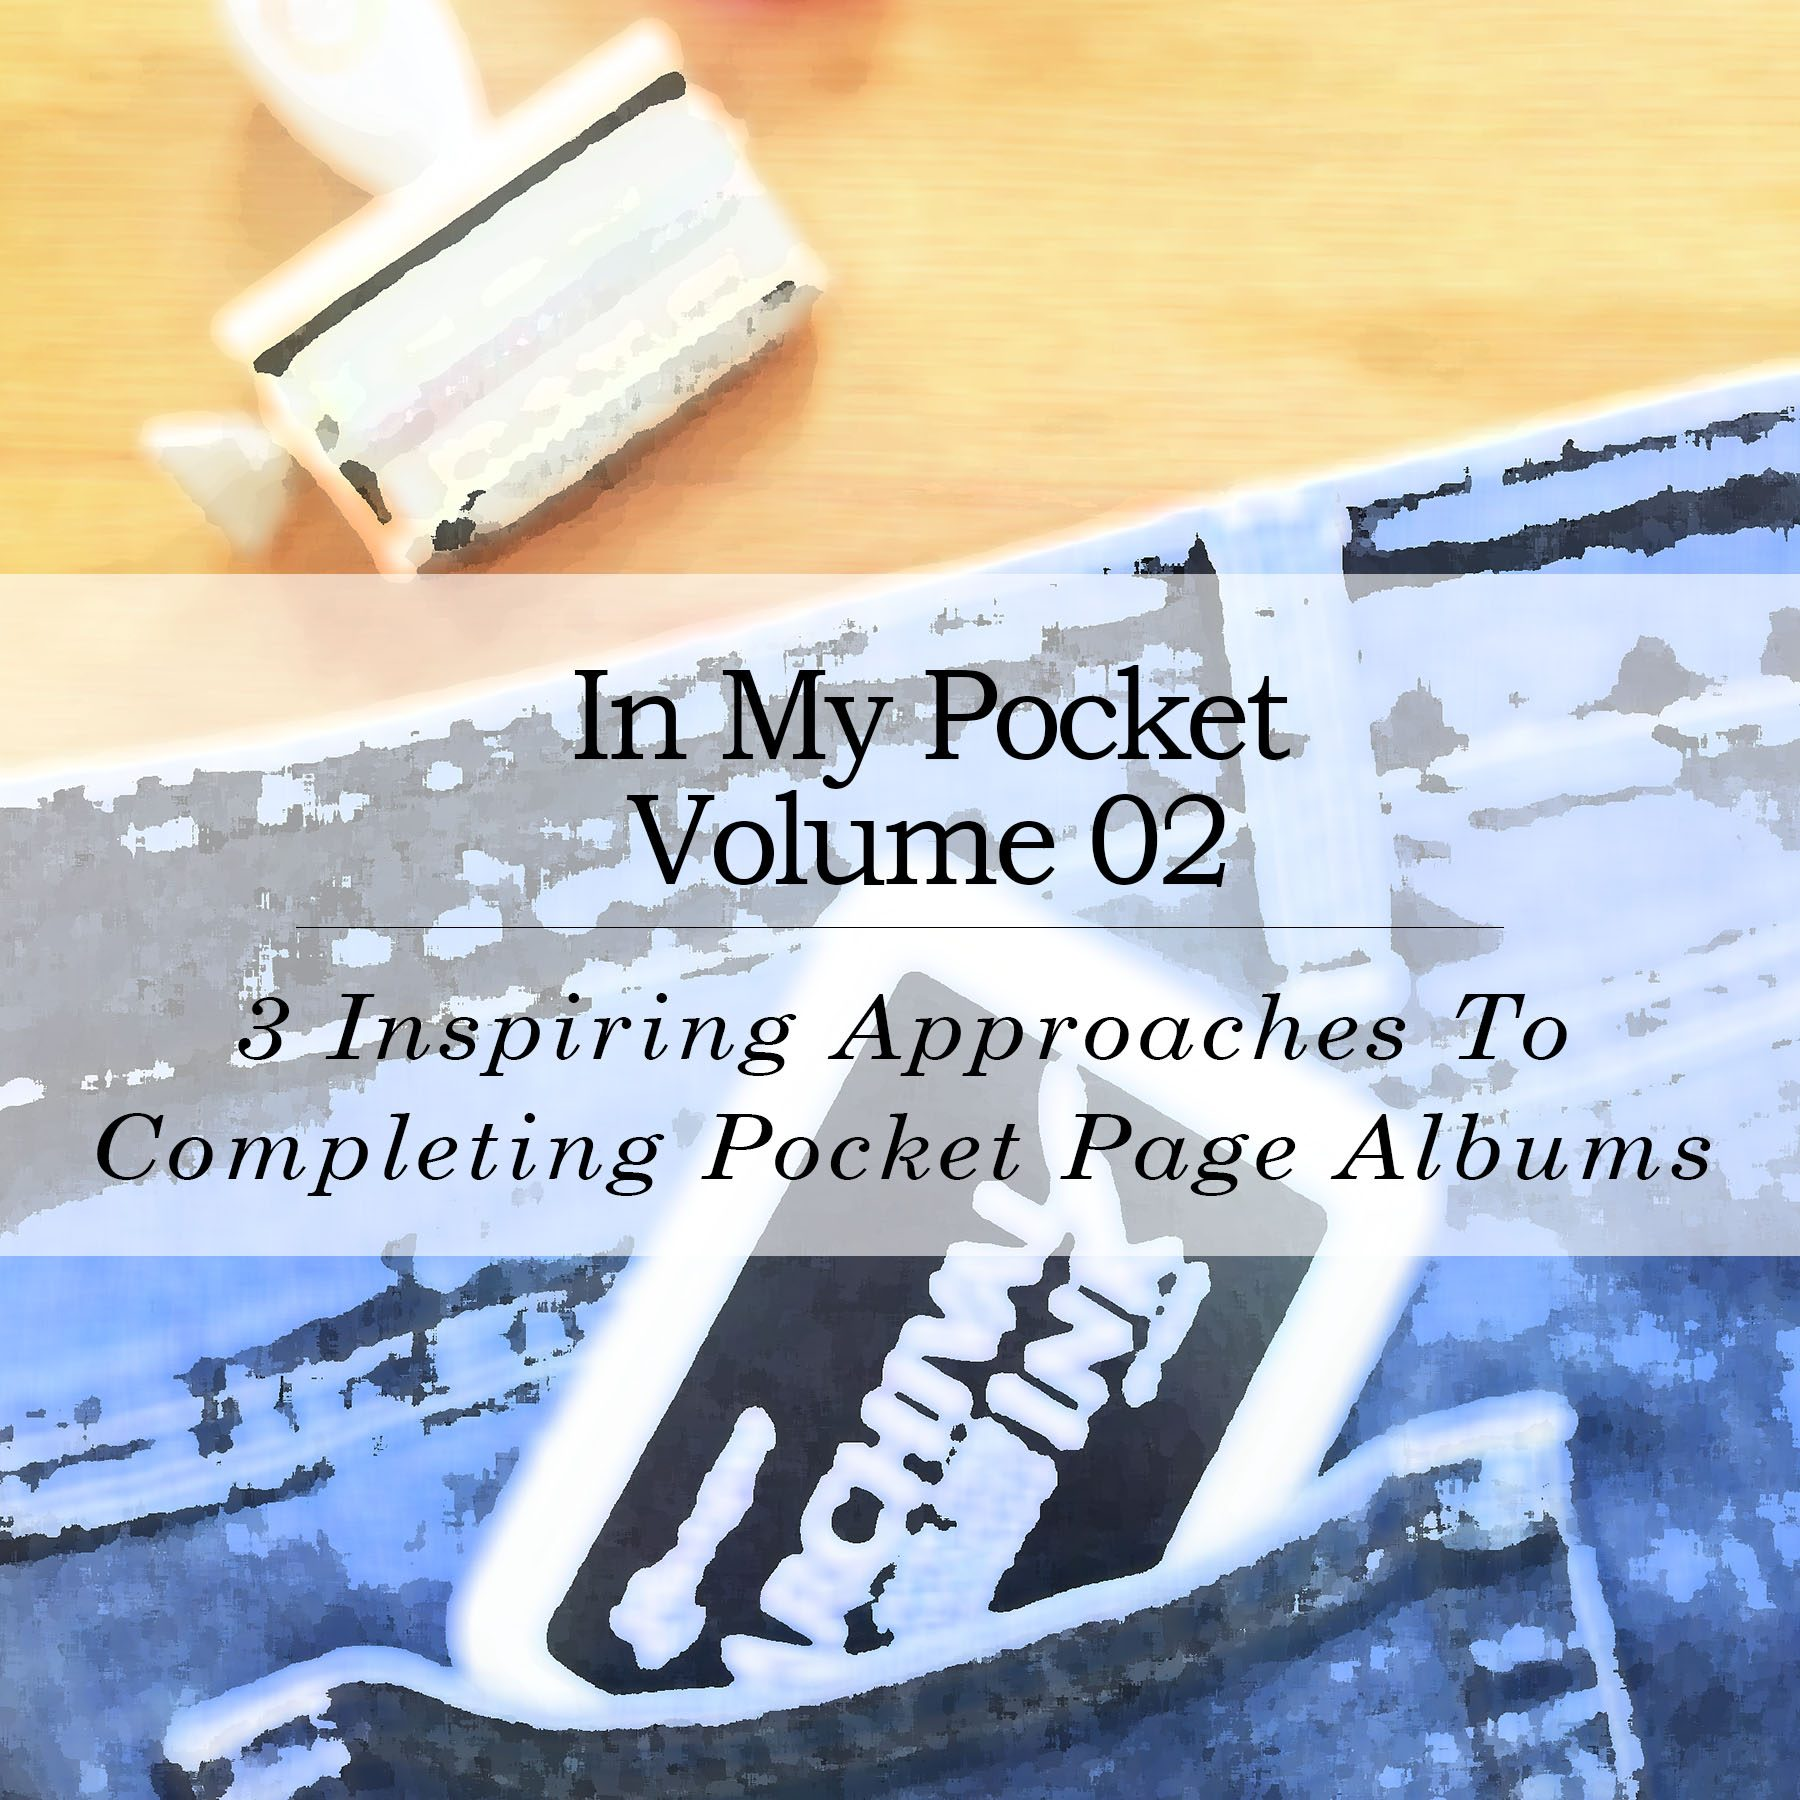 in my pocket class banner image